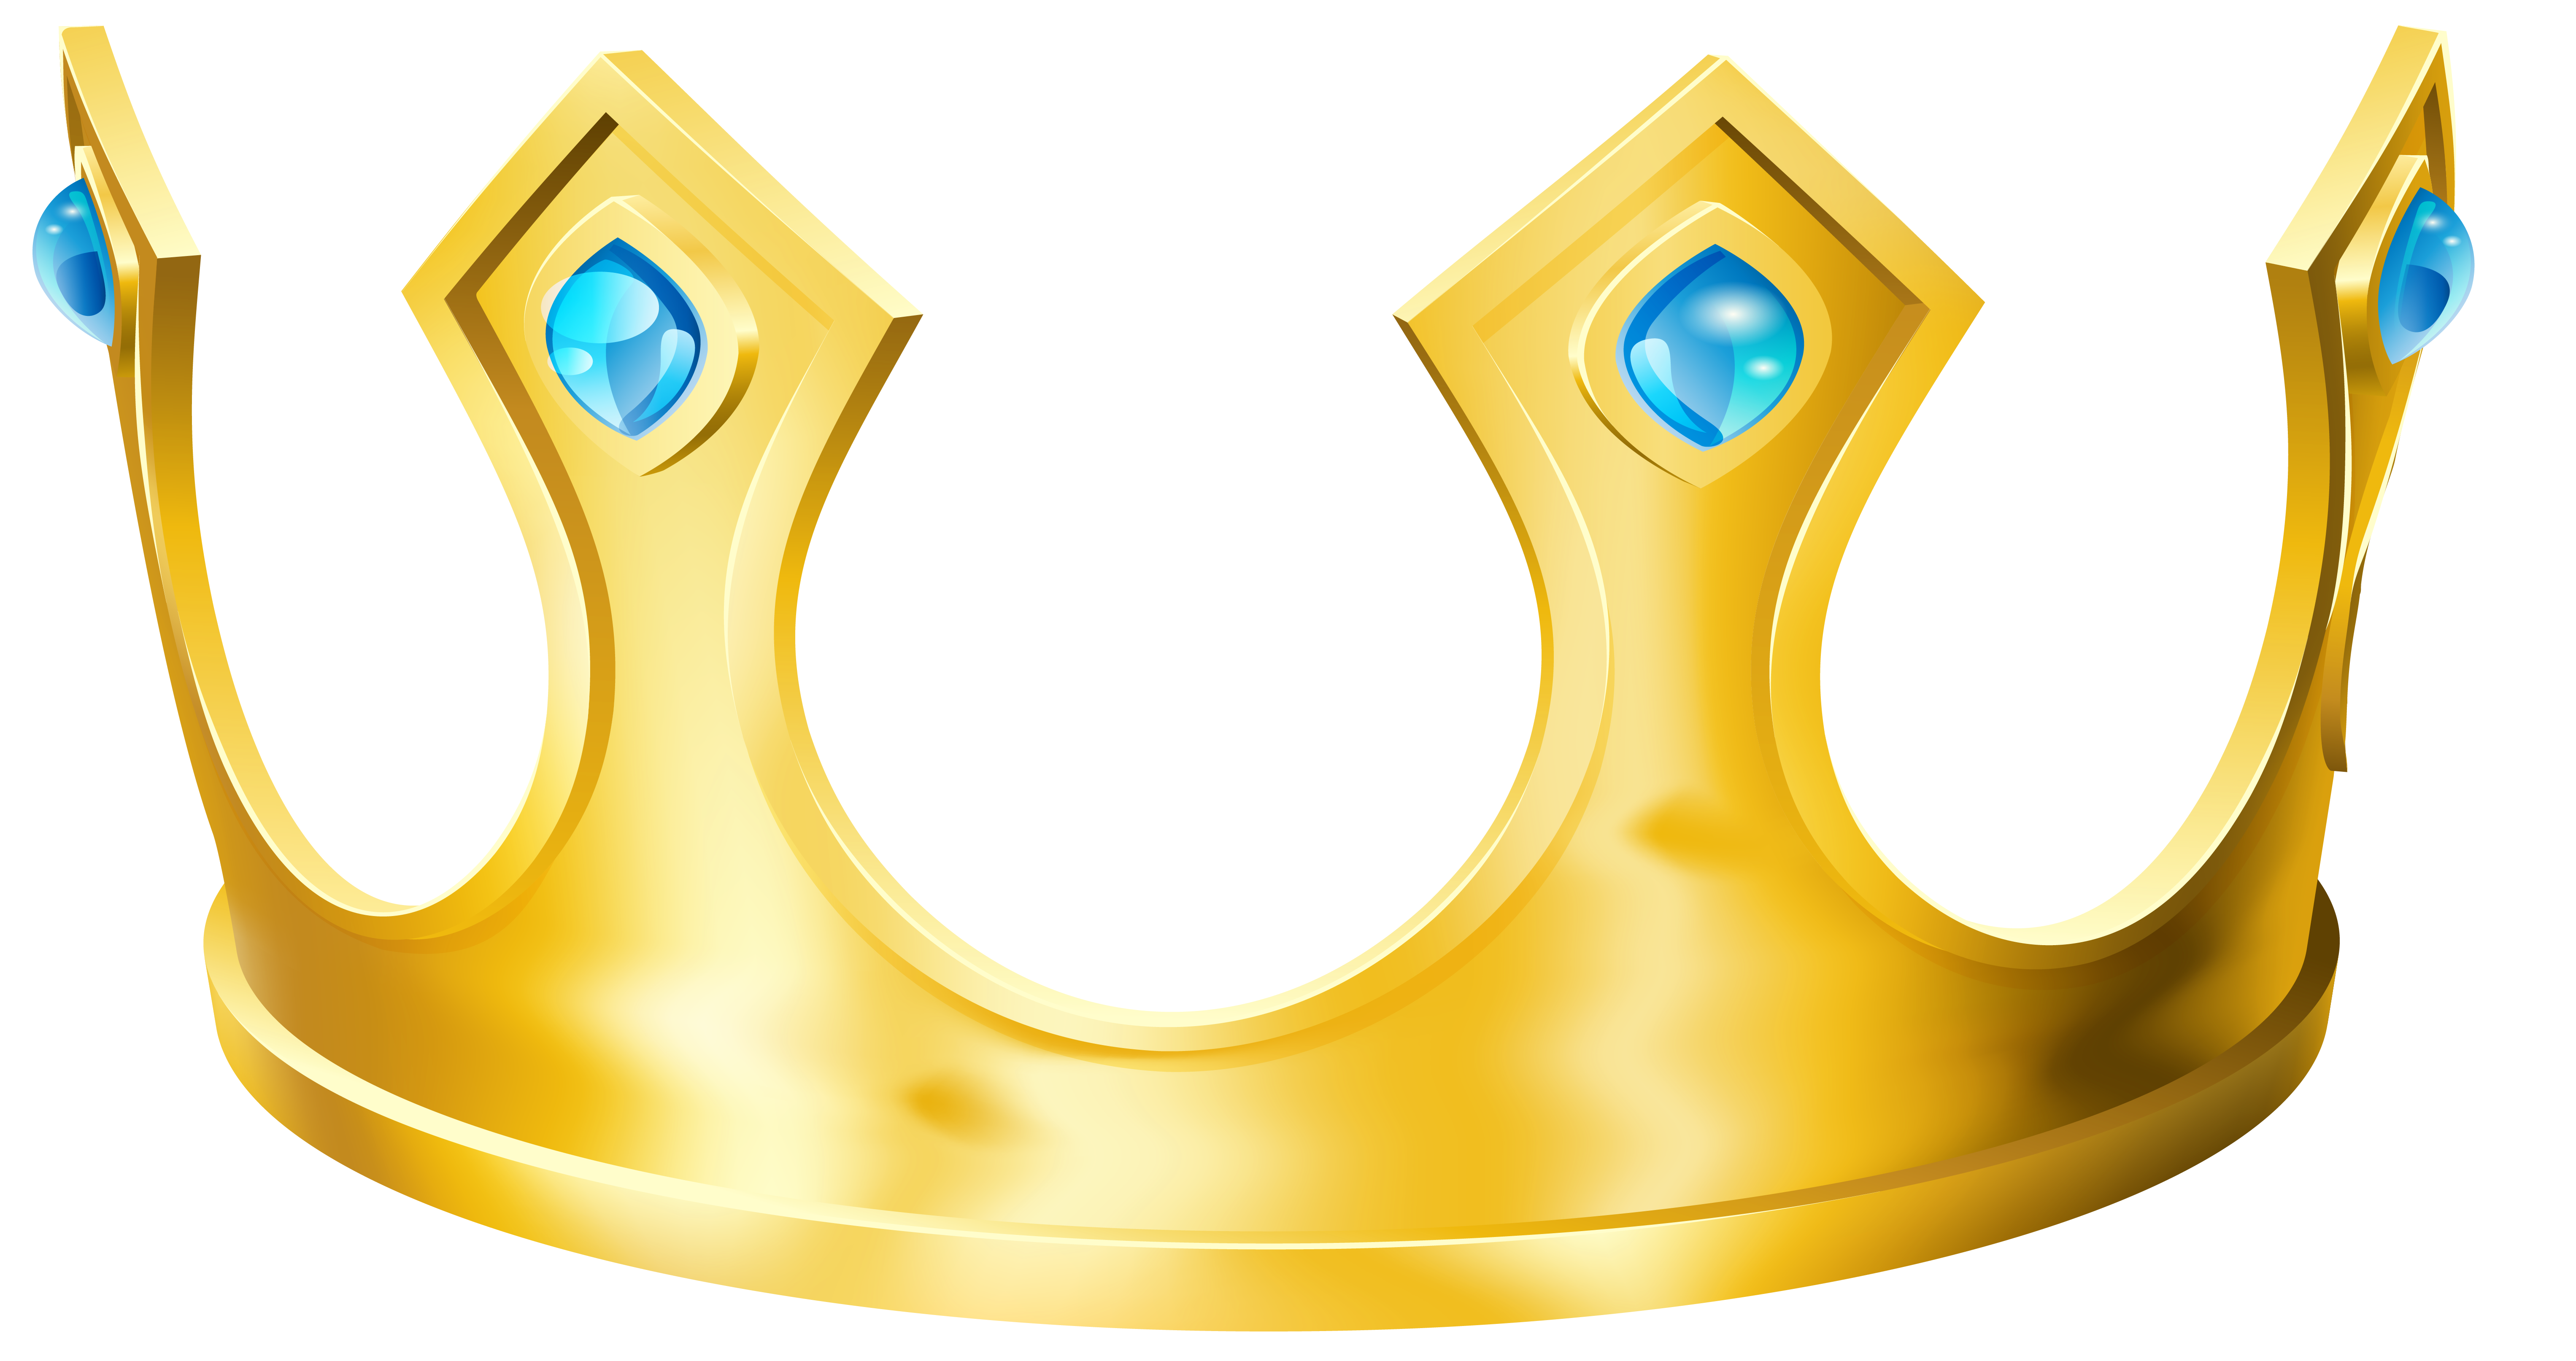 Gold bling crown clipart picture download Clipart crown basic FREE for download on rpelm picture download